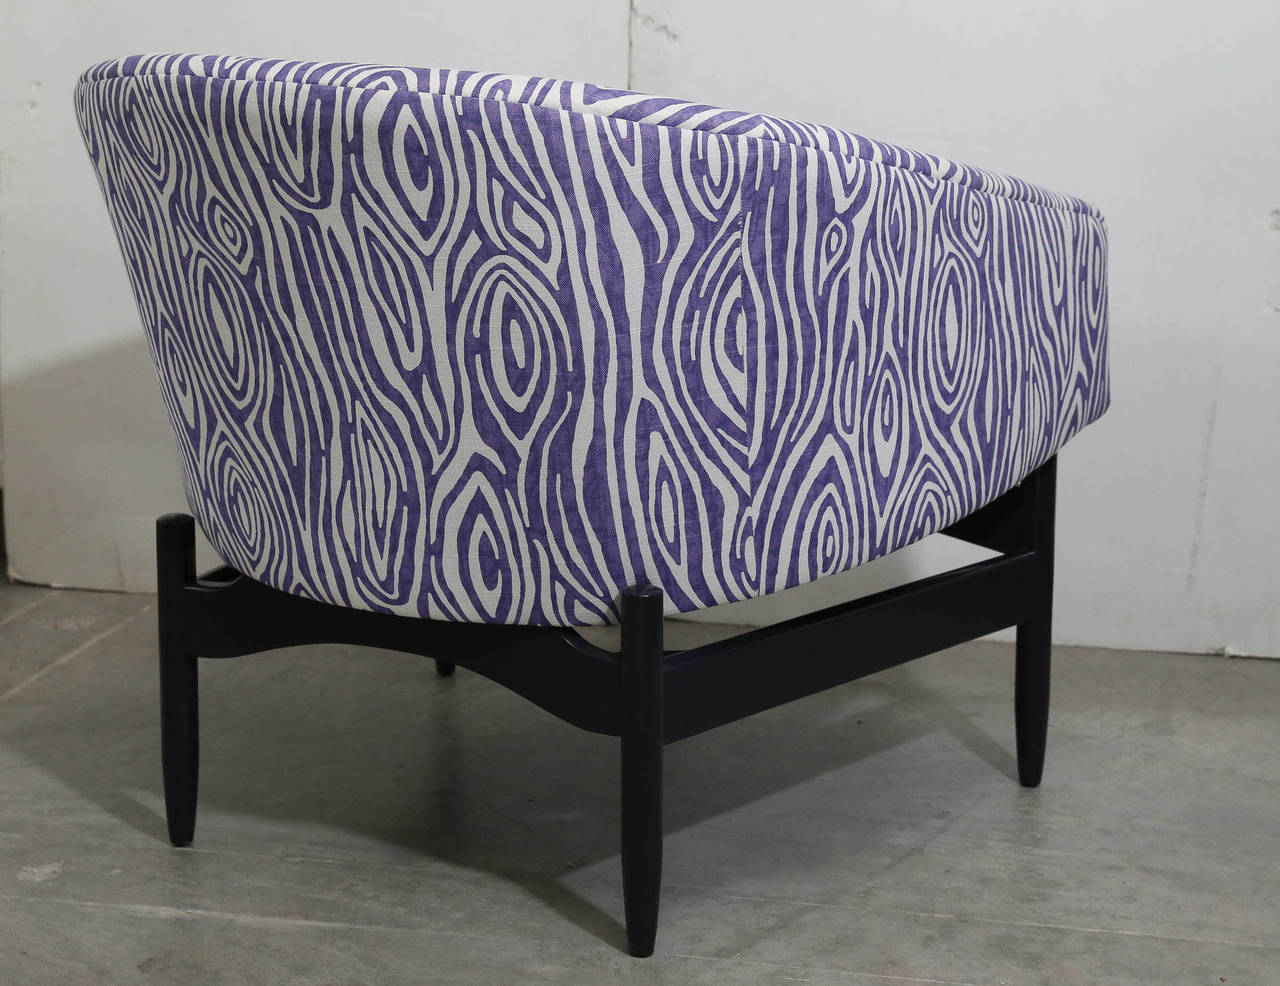 Pair of Newly Upholstered Purple & White Animal Print Barrel Back Lounge Chairs In Good Condition For Sale In Houston, TX